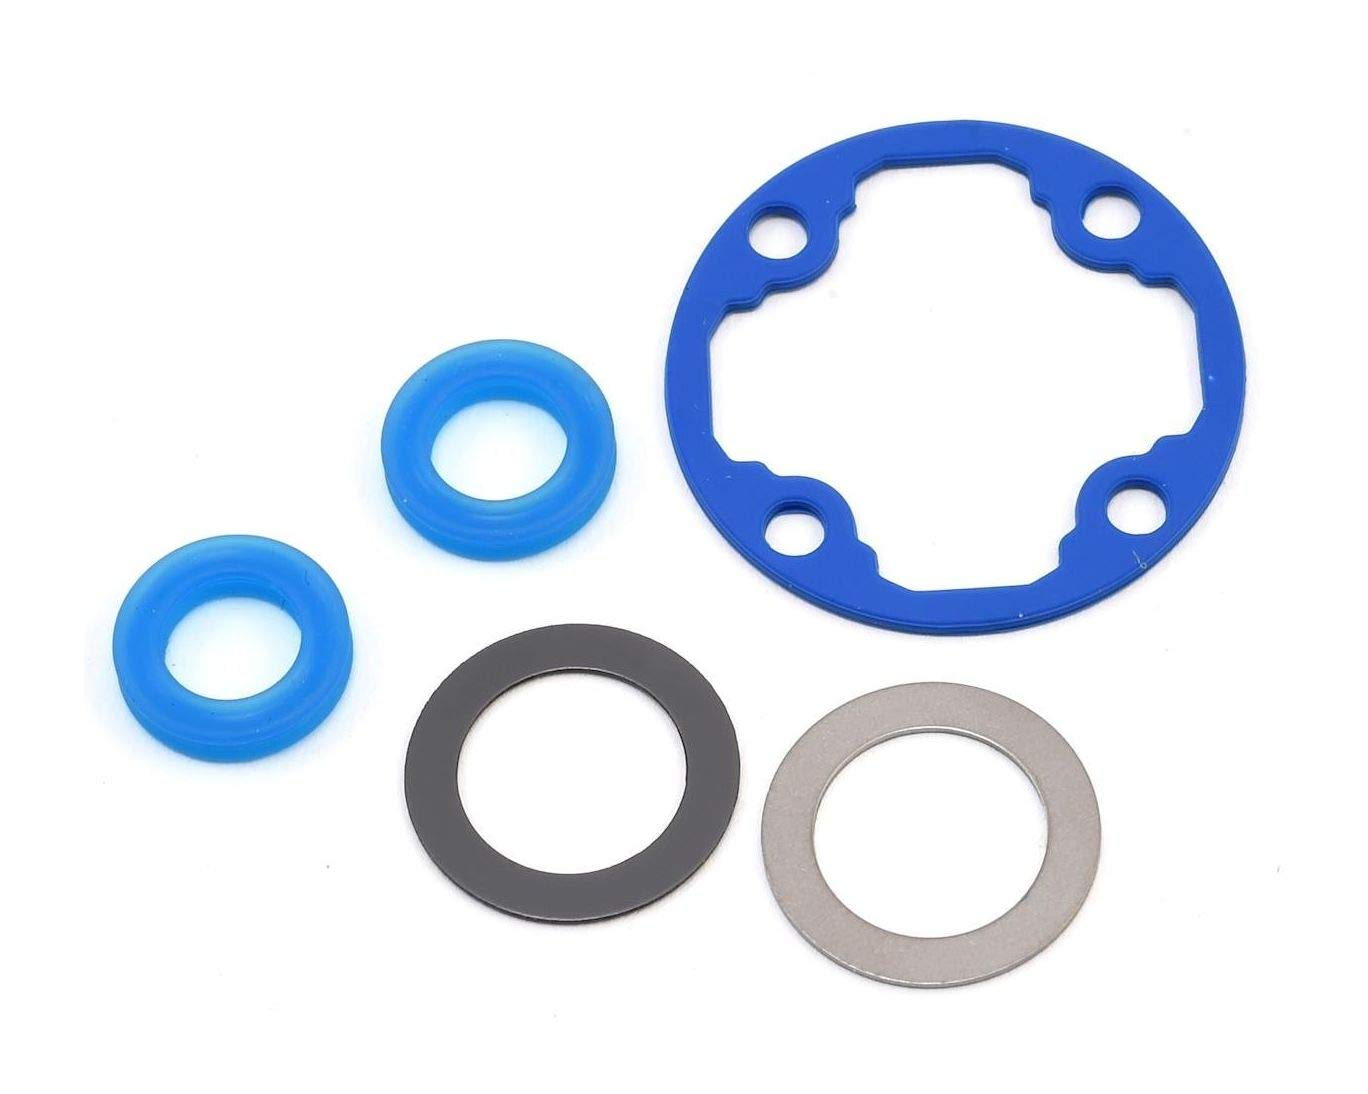 tr8680 TRA8680 TTraxxass Differential Gasket SEAL limited product Inexpensive Set traxxas8680